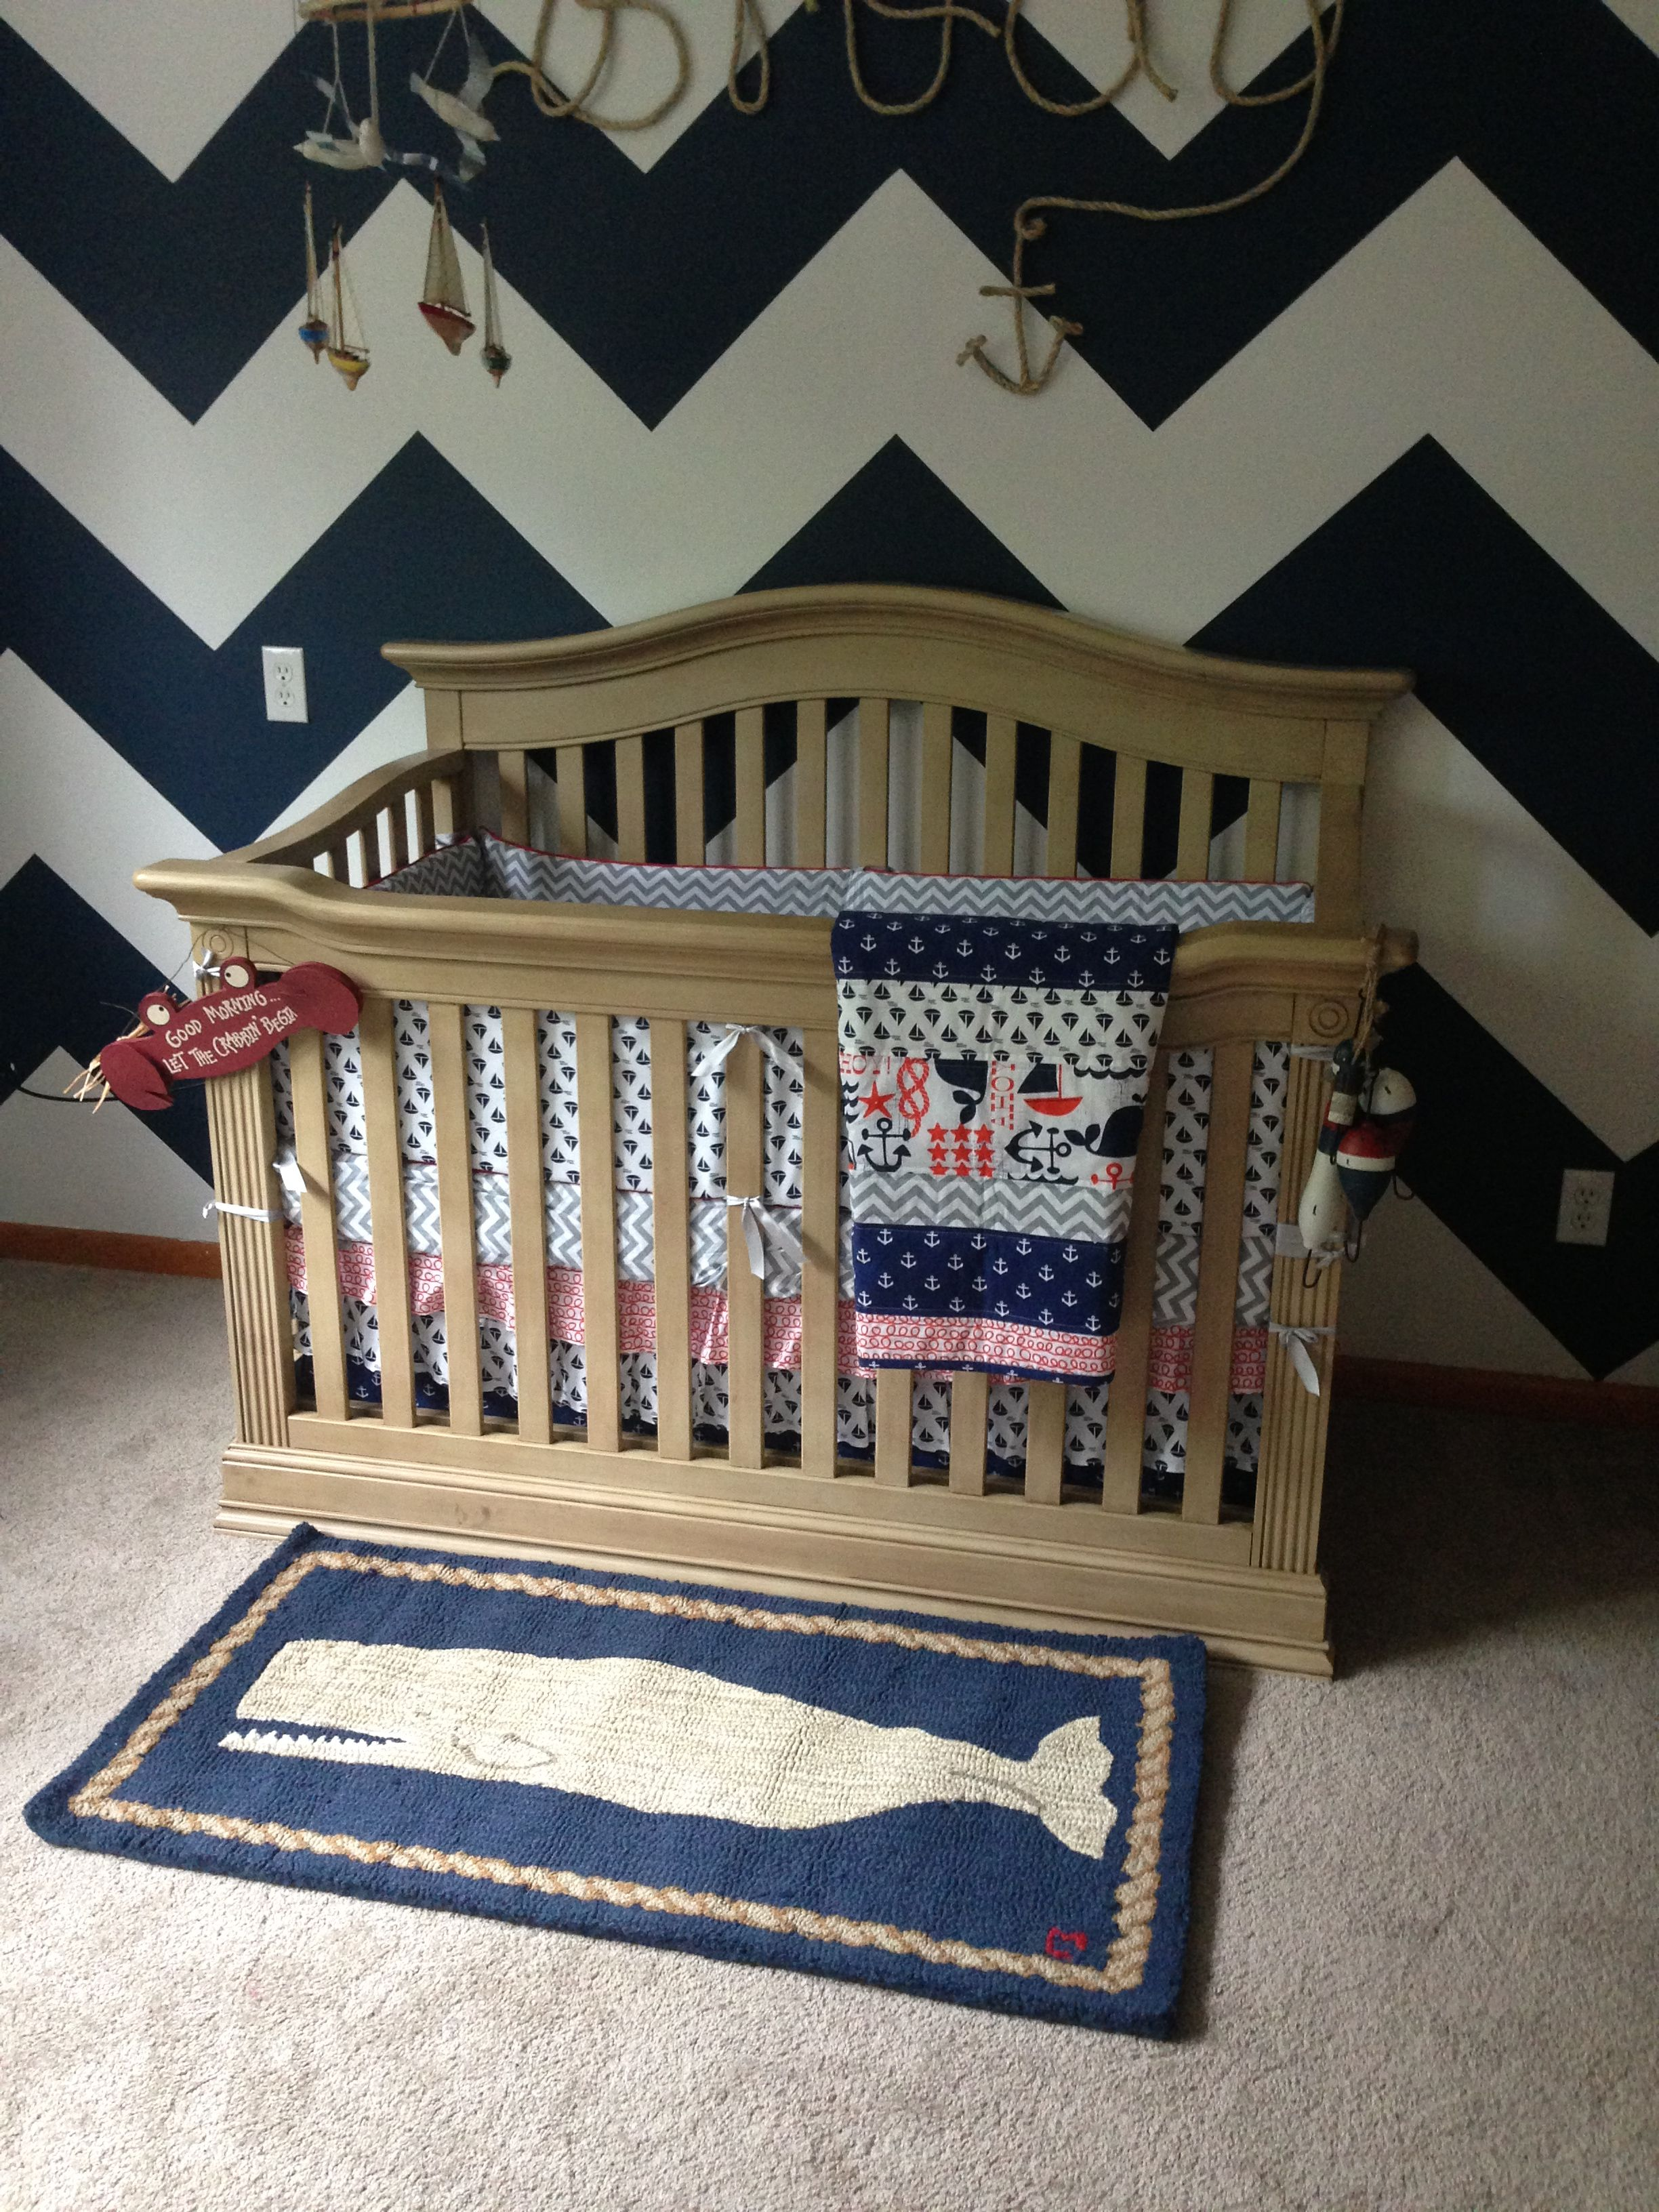 Pin By Jennifer Rydman On Baby 2 Cool Rugs Nursery Baby Cache